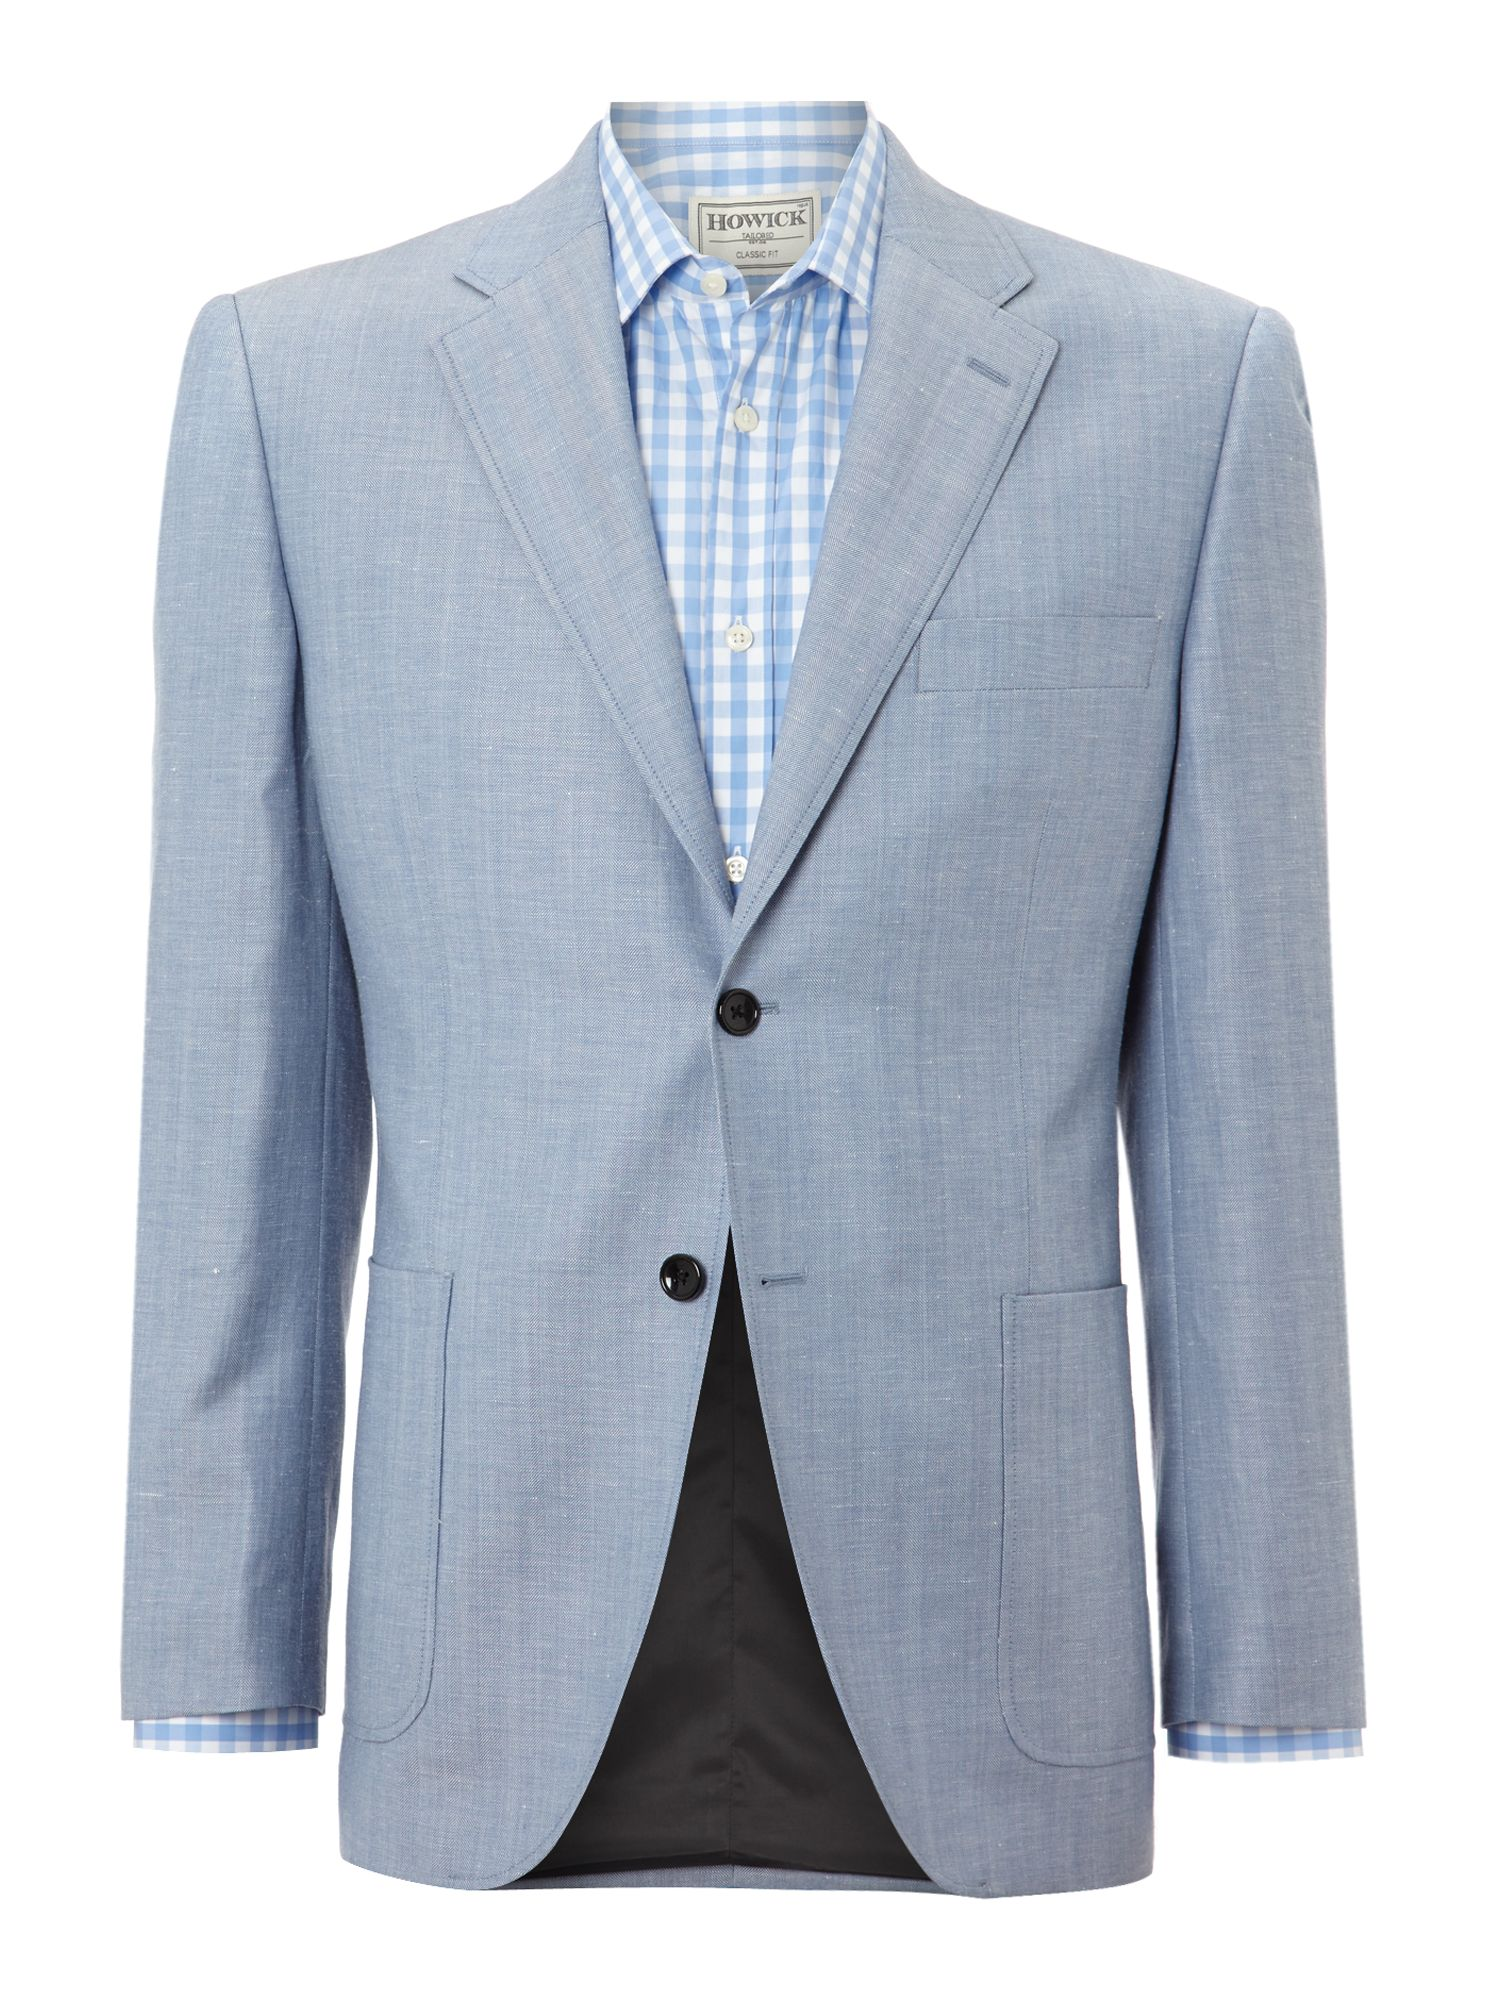 Nache Patch Pocket Herringbone Blazer